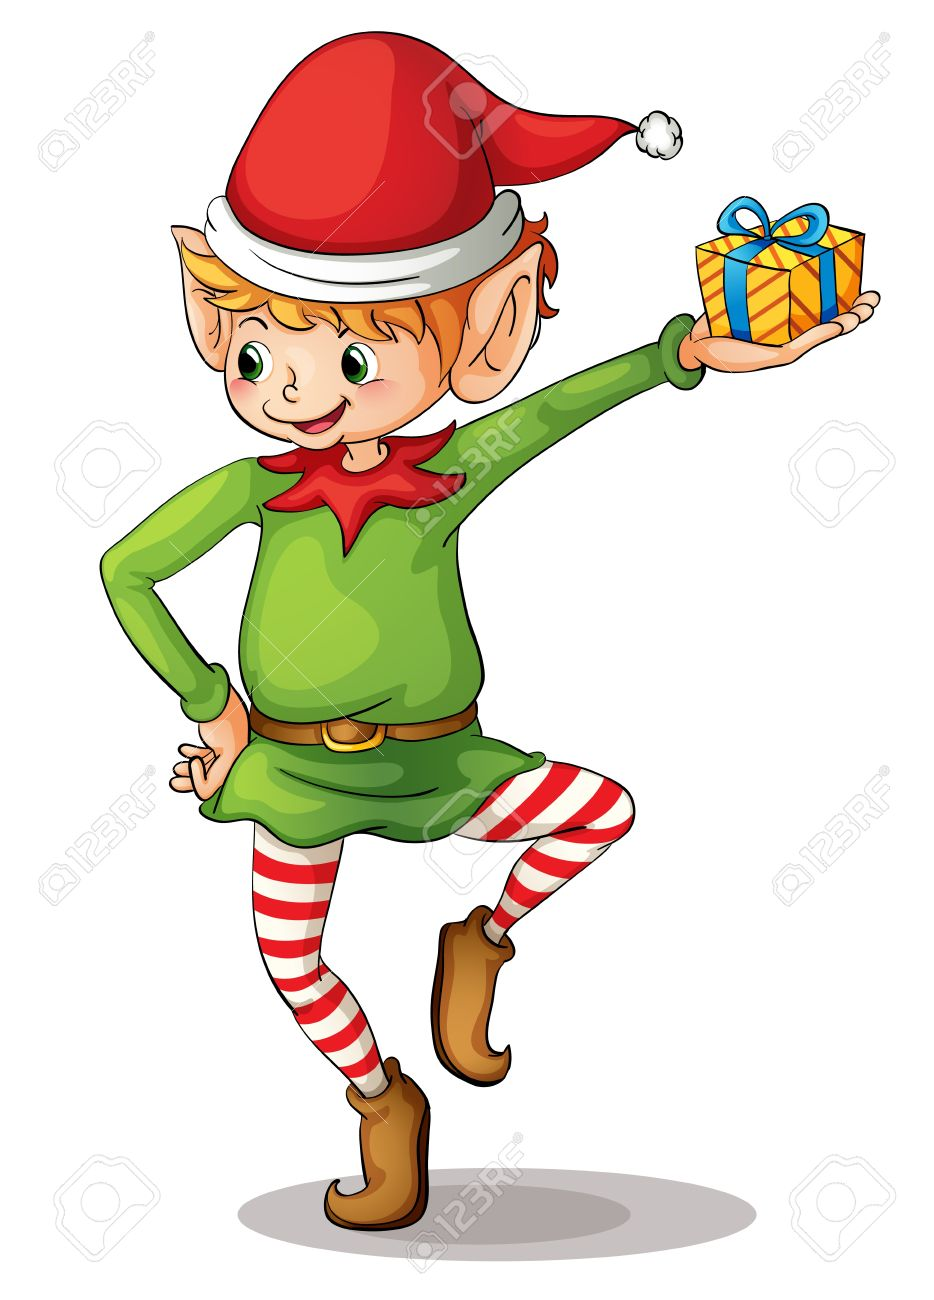 Illustration Of A Christmas Elf Royalty Free Cliparts, Vectors ...